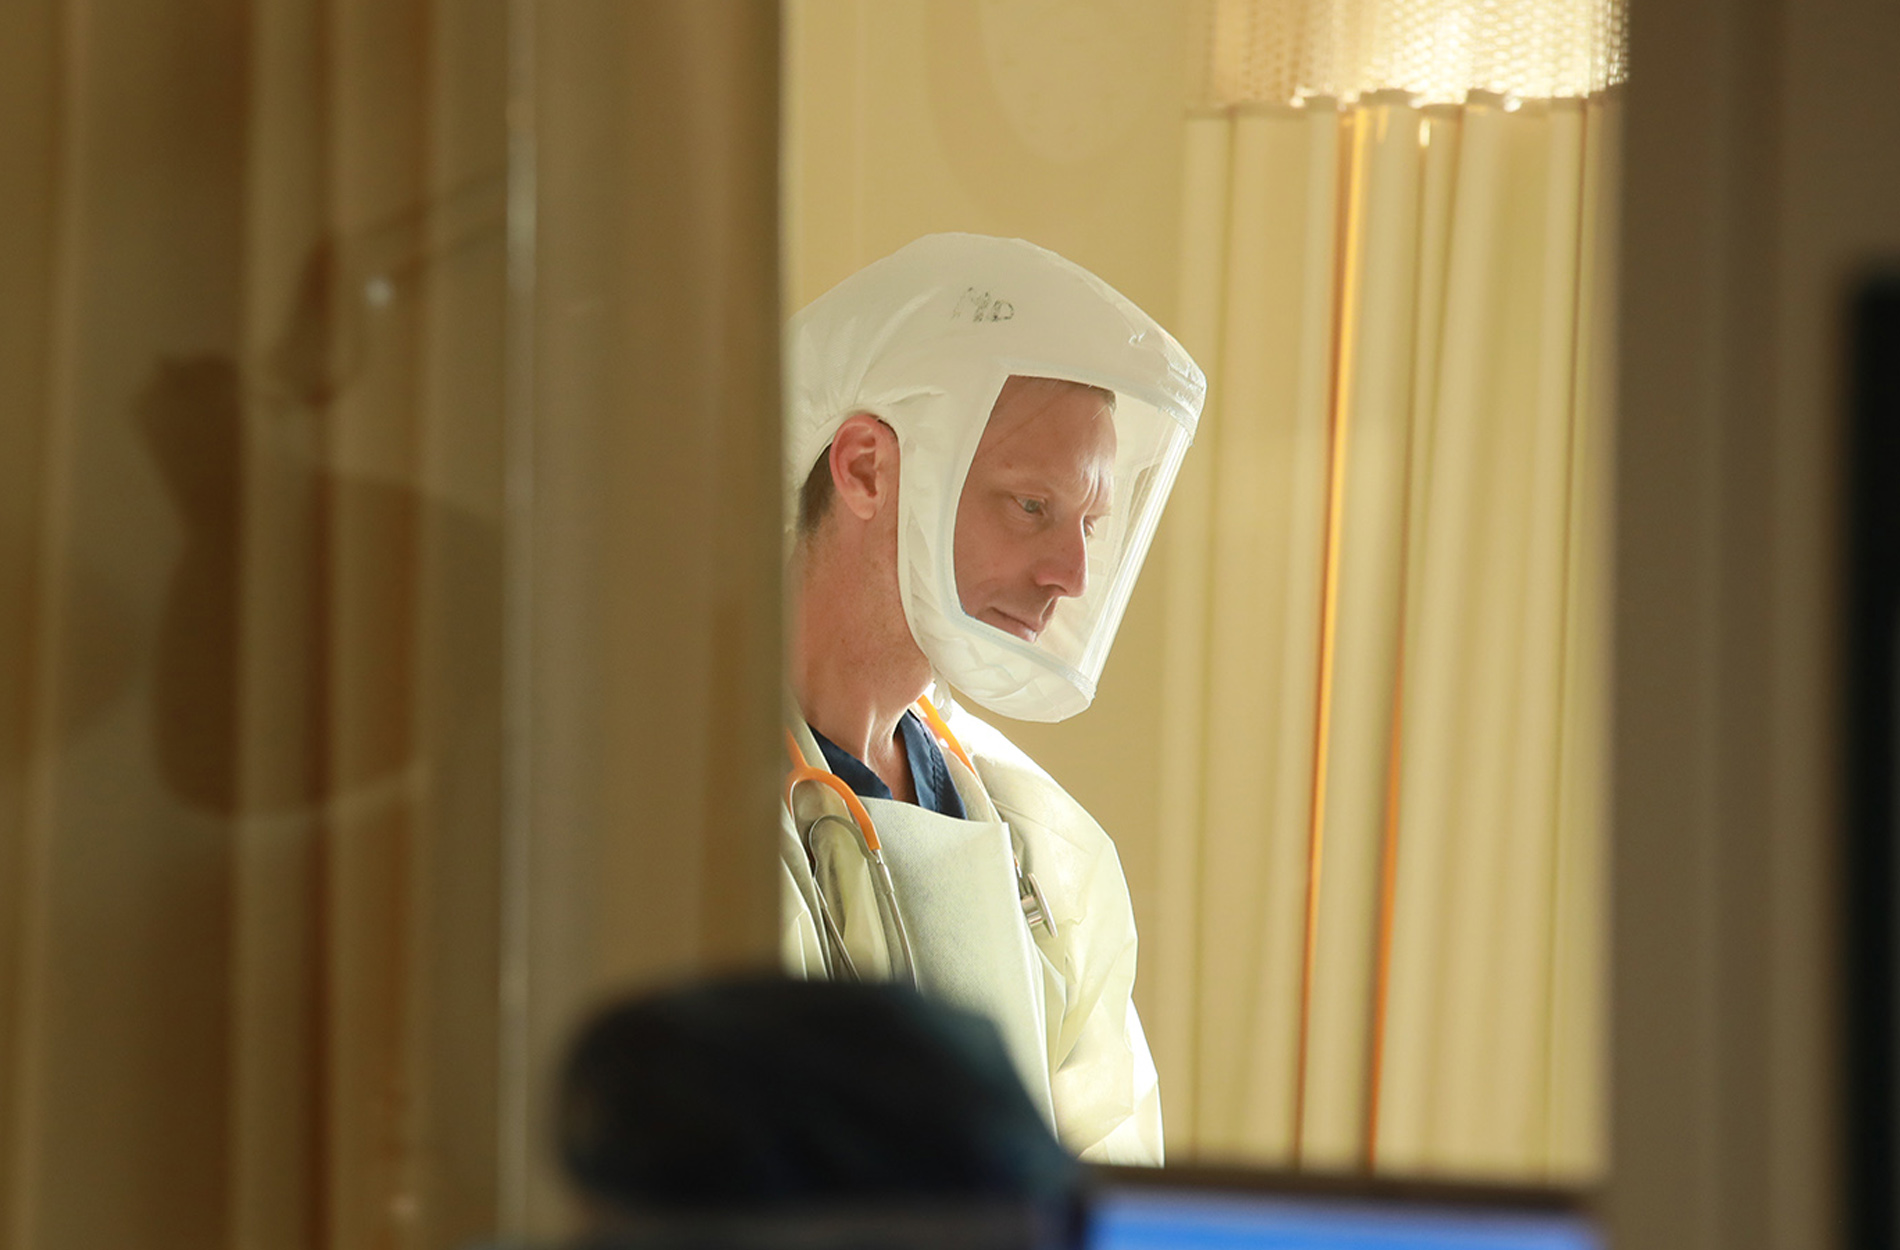 Dr. Keith in ICU wearing protective equipment